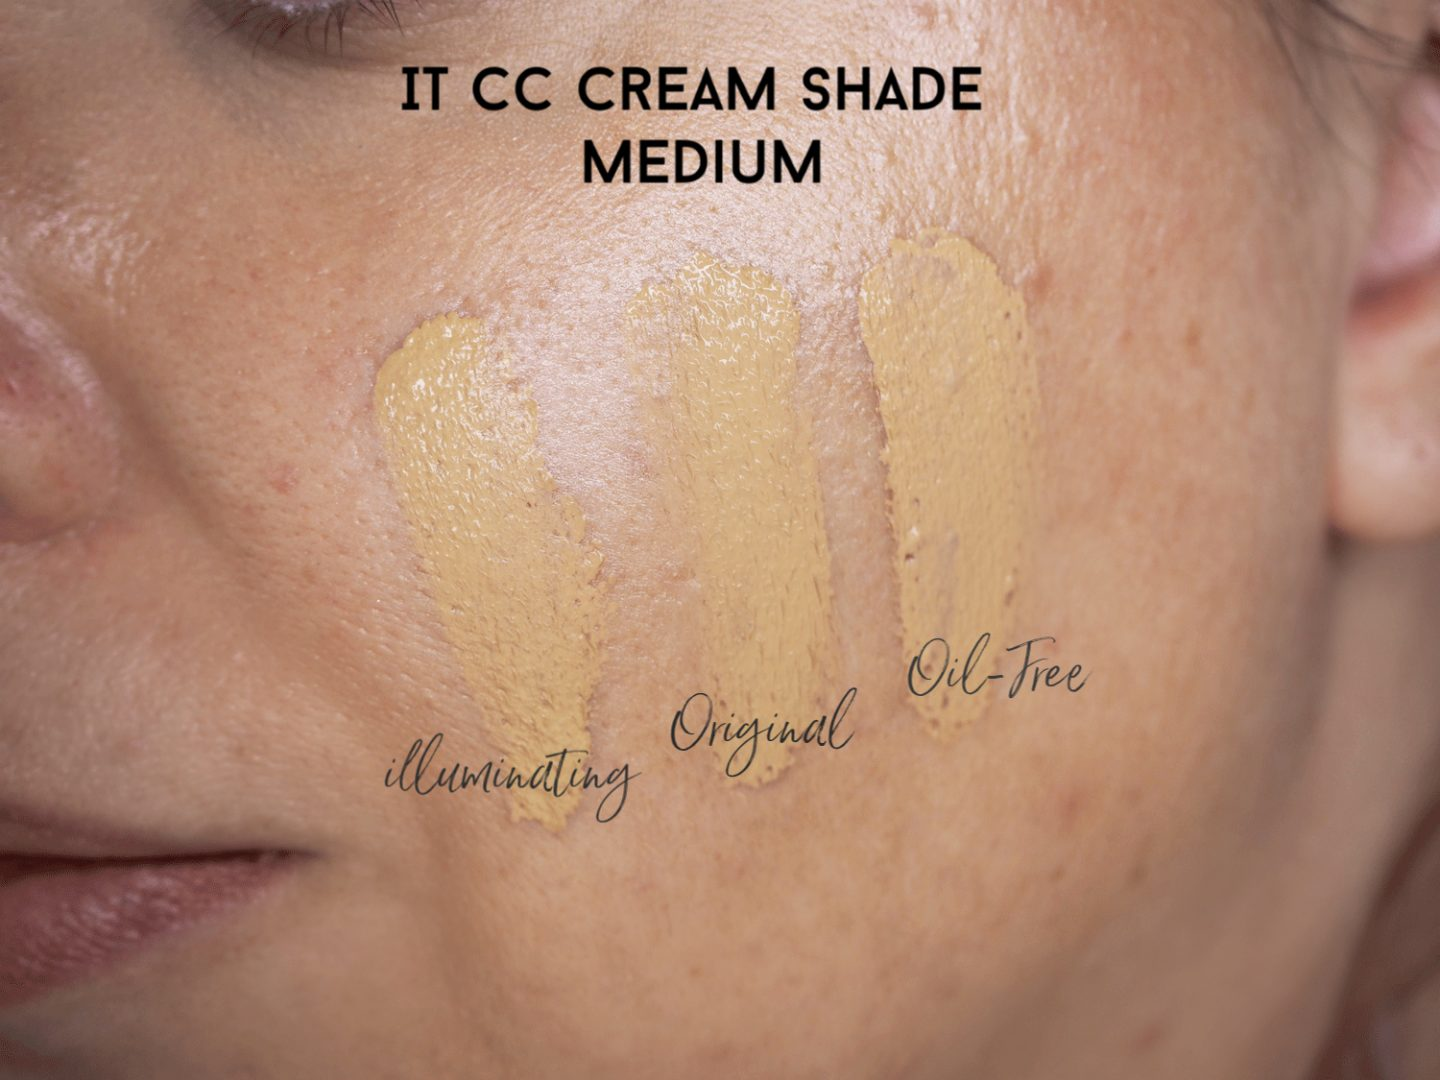 It CC cream medium swatches